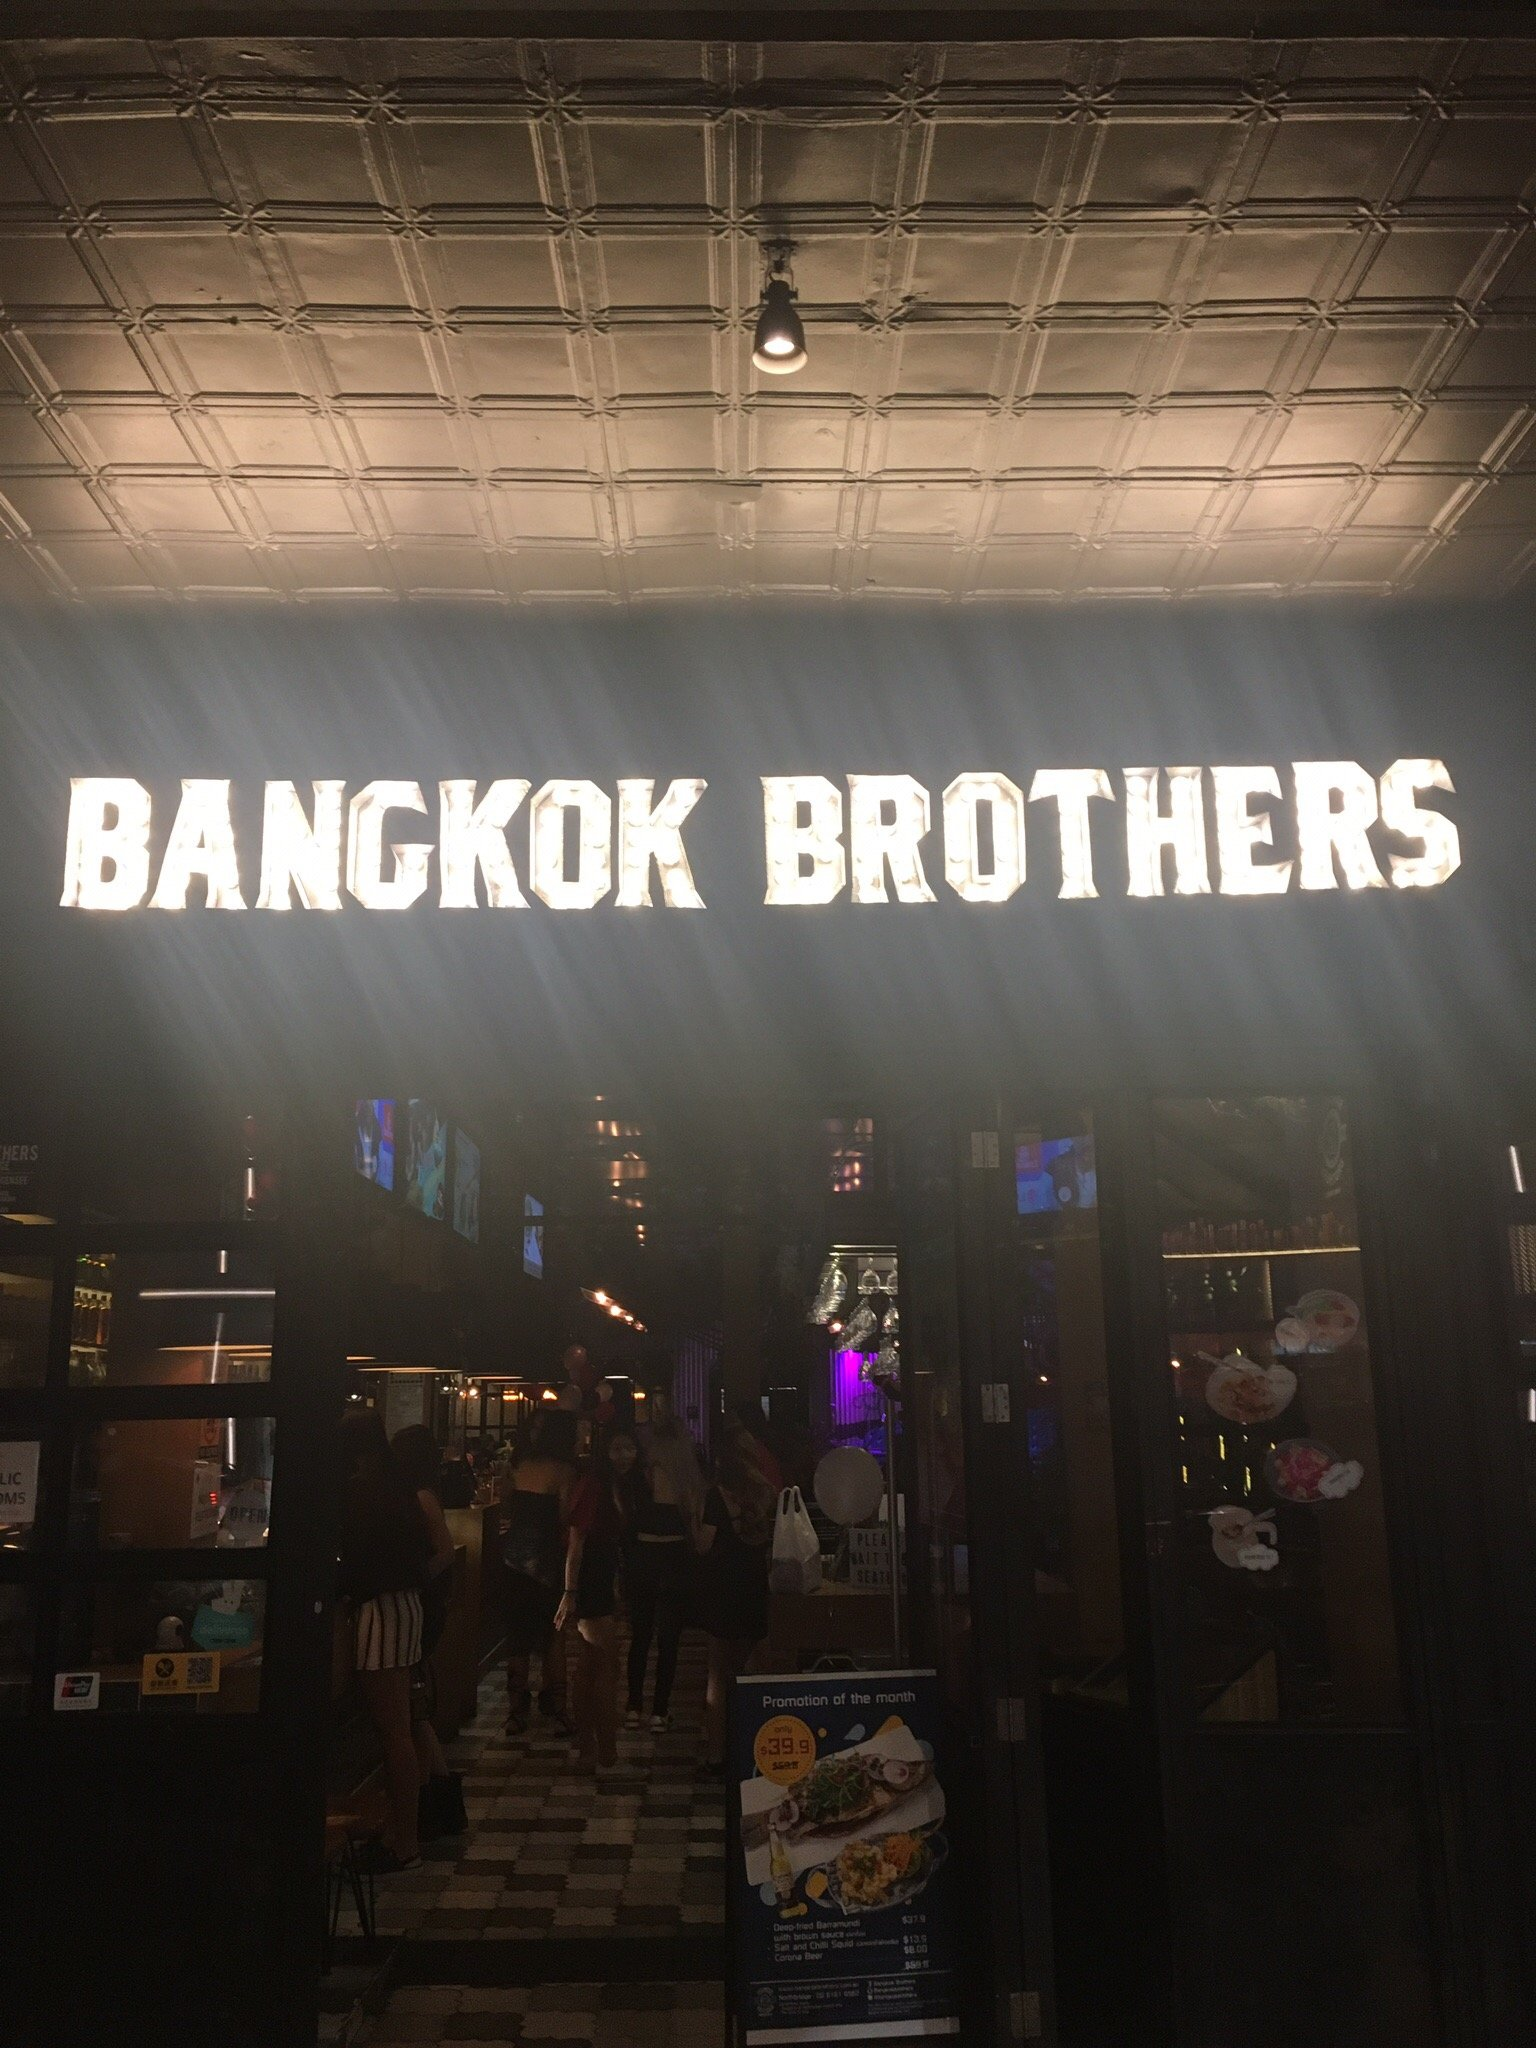 Bangkok Brothers - Casino Accommodation